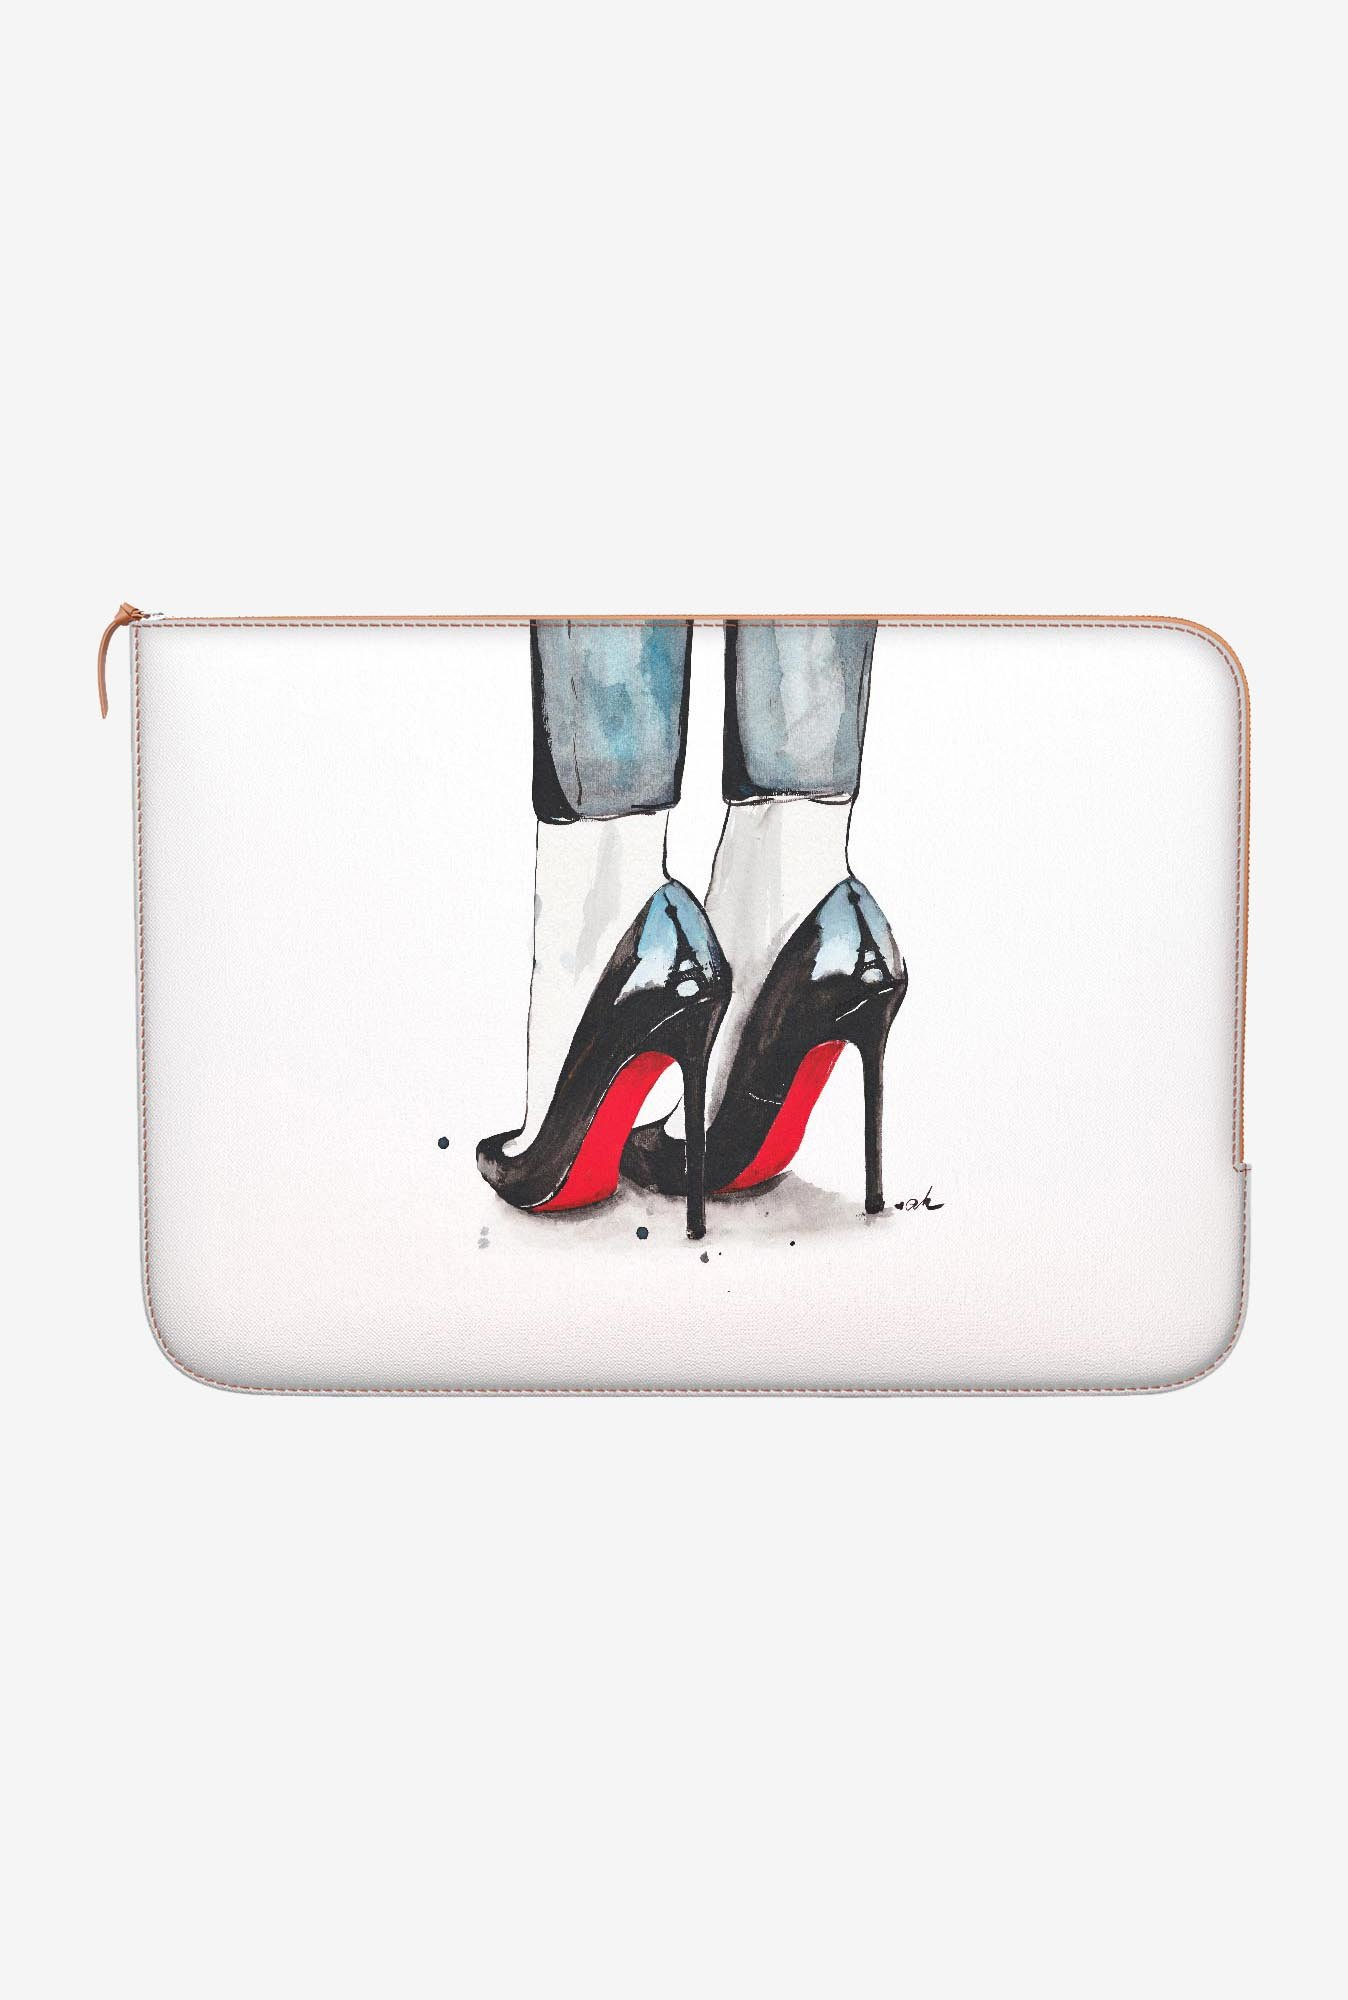 DailyObjects Cloudy In Paris MacBook Pro 13 Zippered Sleeve